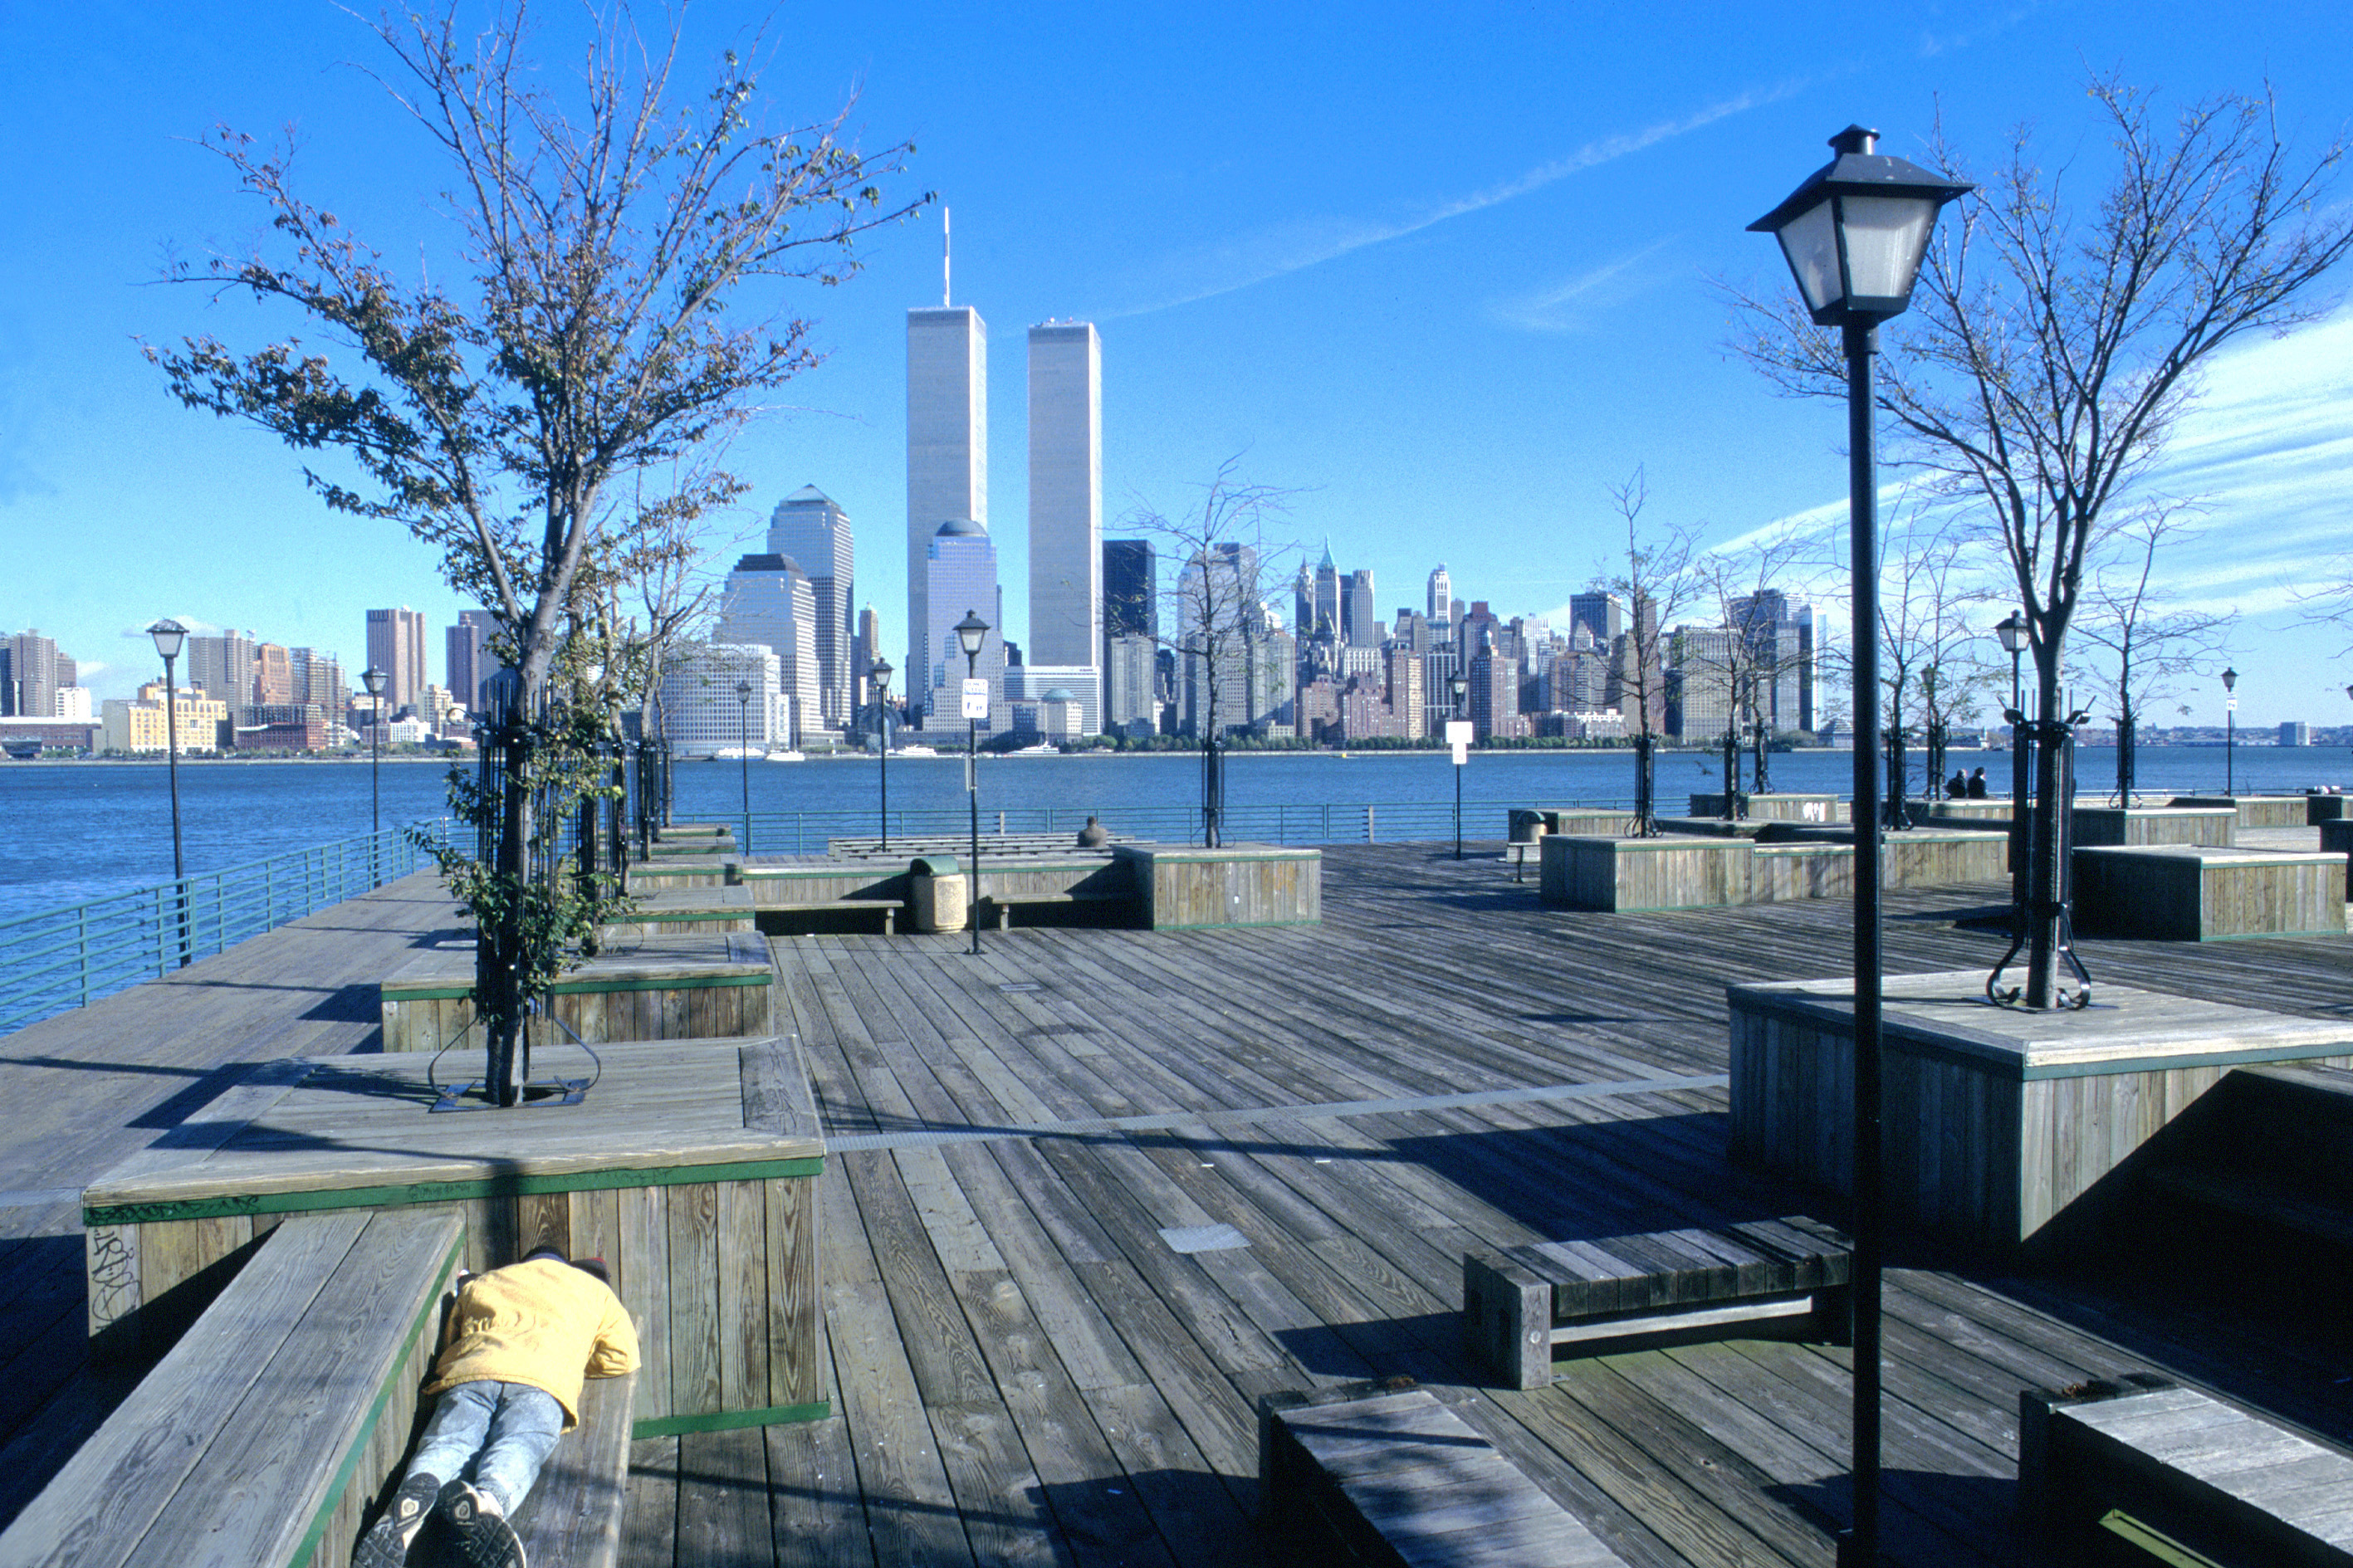 Person lying on bench on pier overlookin